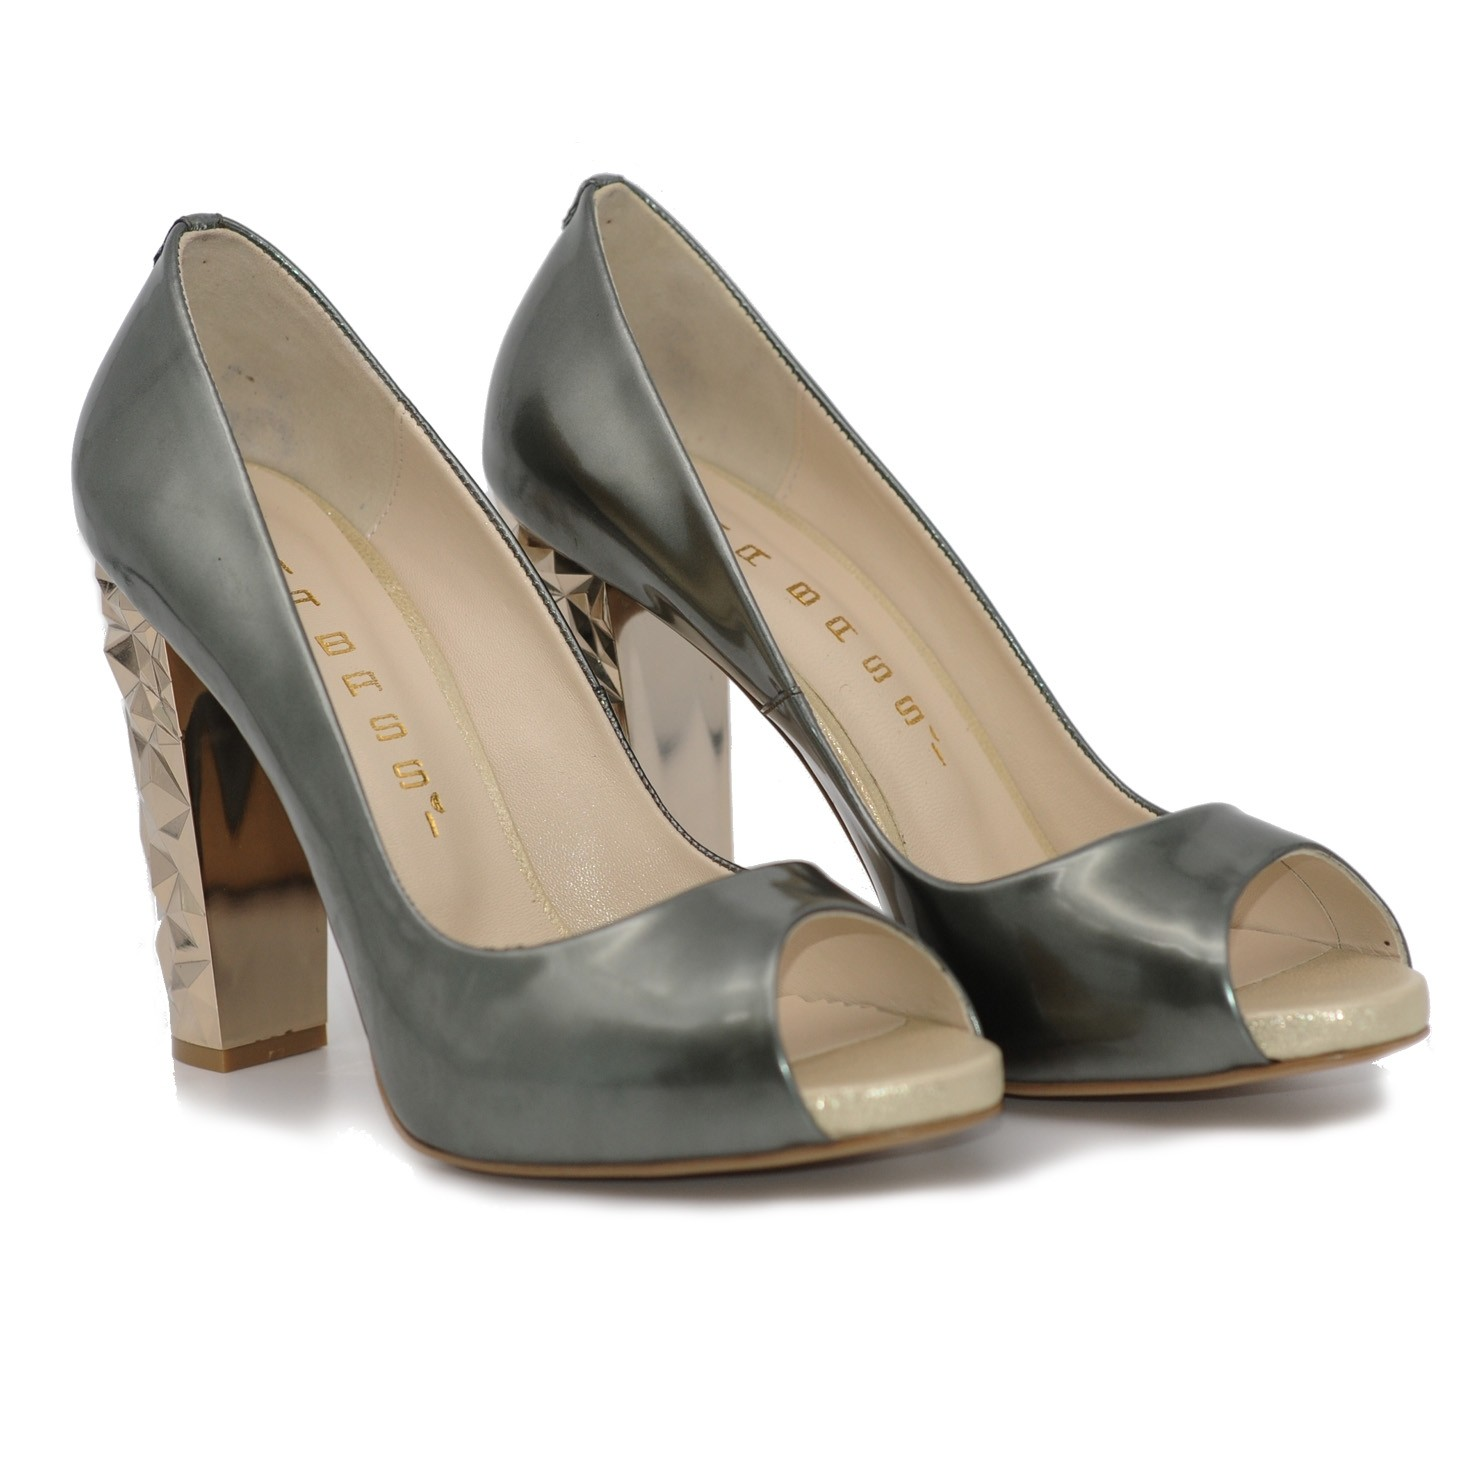 Stylish Open Toed High Heels with Patterned Solid Heel - Pewter Colour